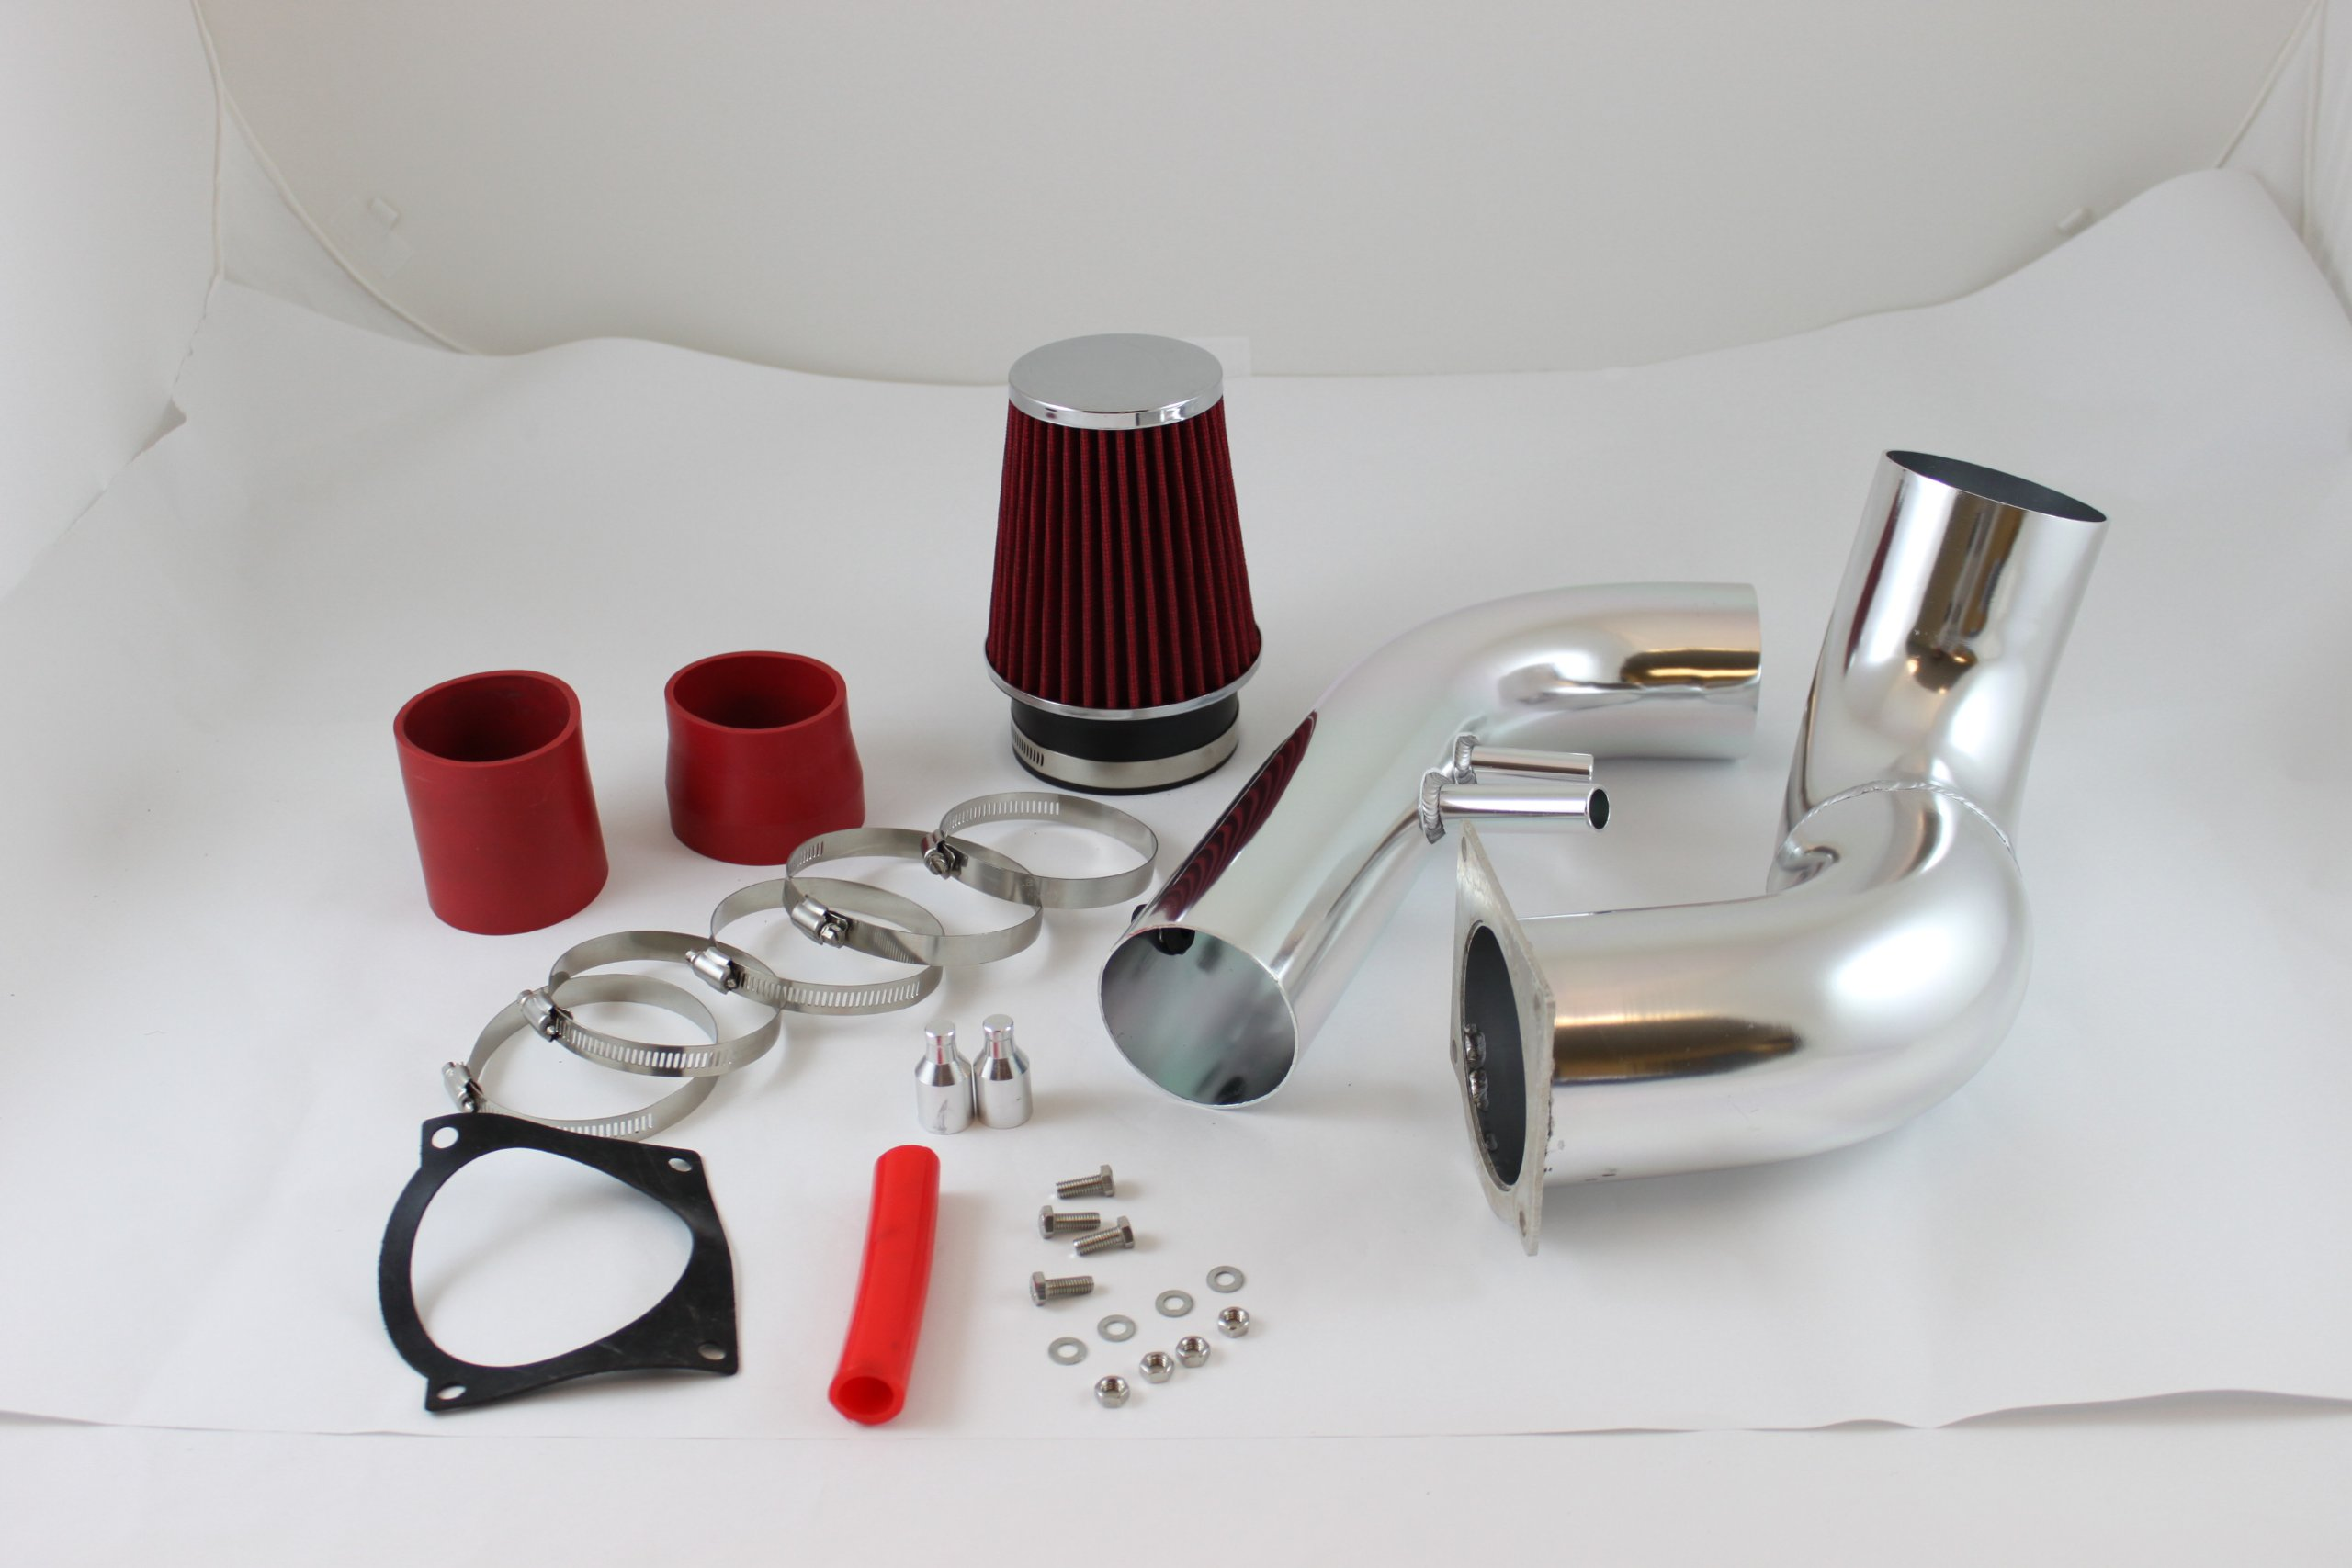 Velocity Concepts 3.5'' Red Cold Air Intake Induction Kit + Filter For 96-04 Ford Mustang 4.6L V8 N/A Engine